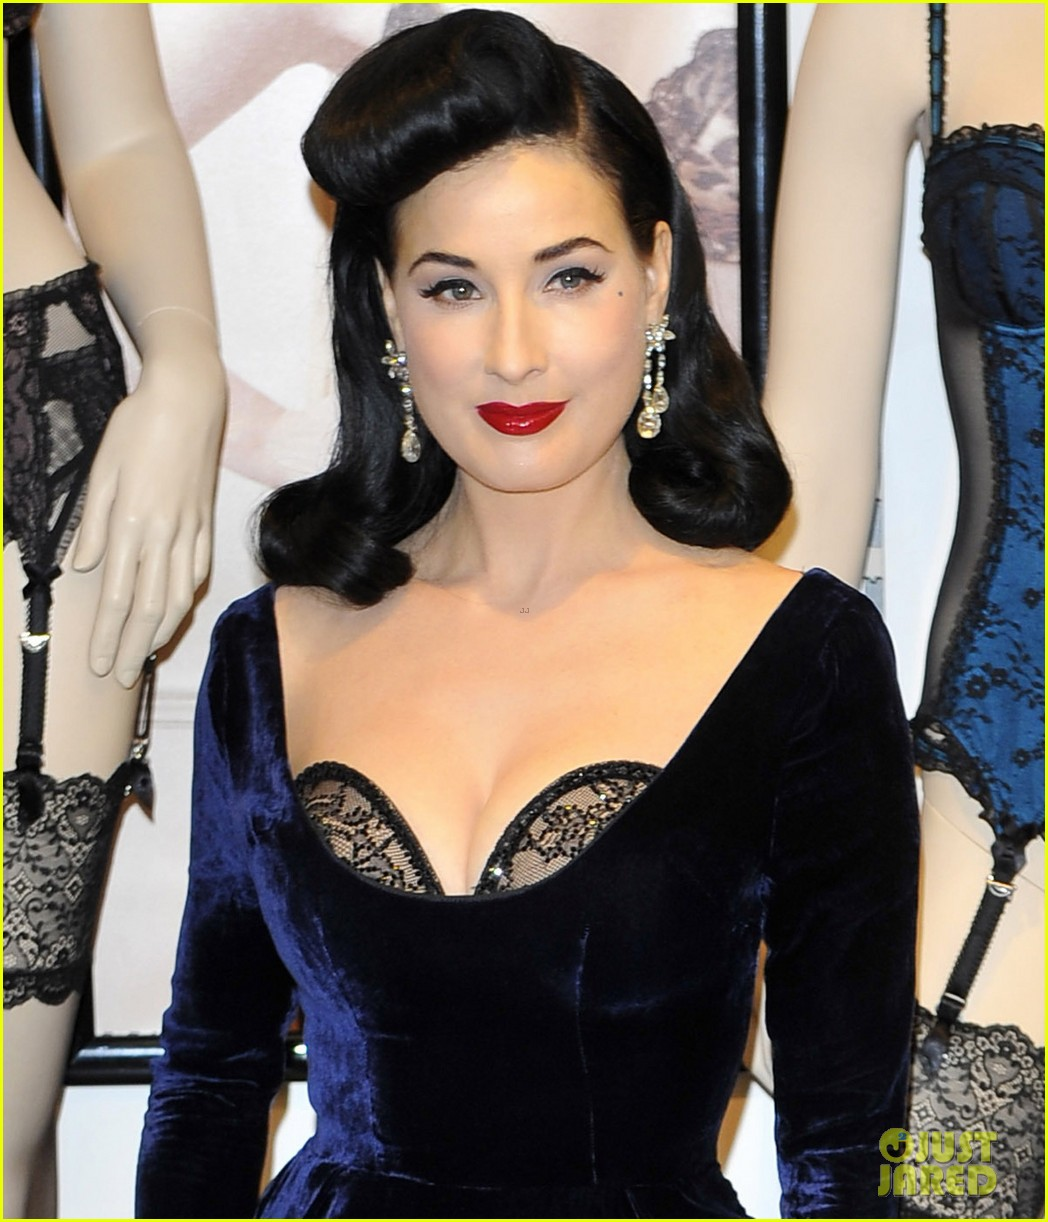 dita von teese in a dita von teese collection dress. Black Bedroom Furniture Sets. Home Design Ideas